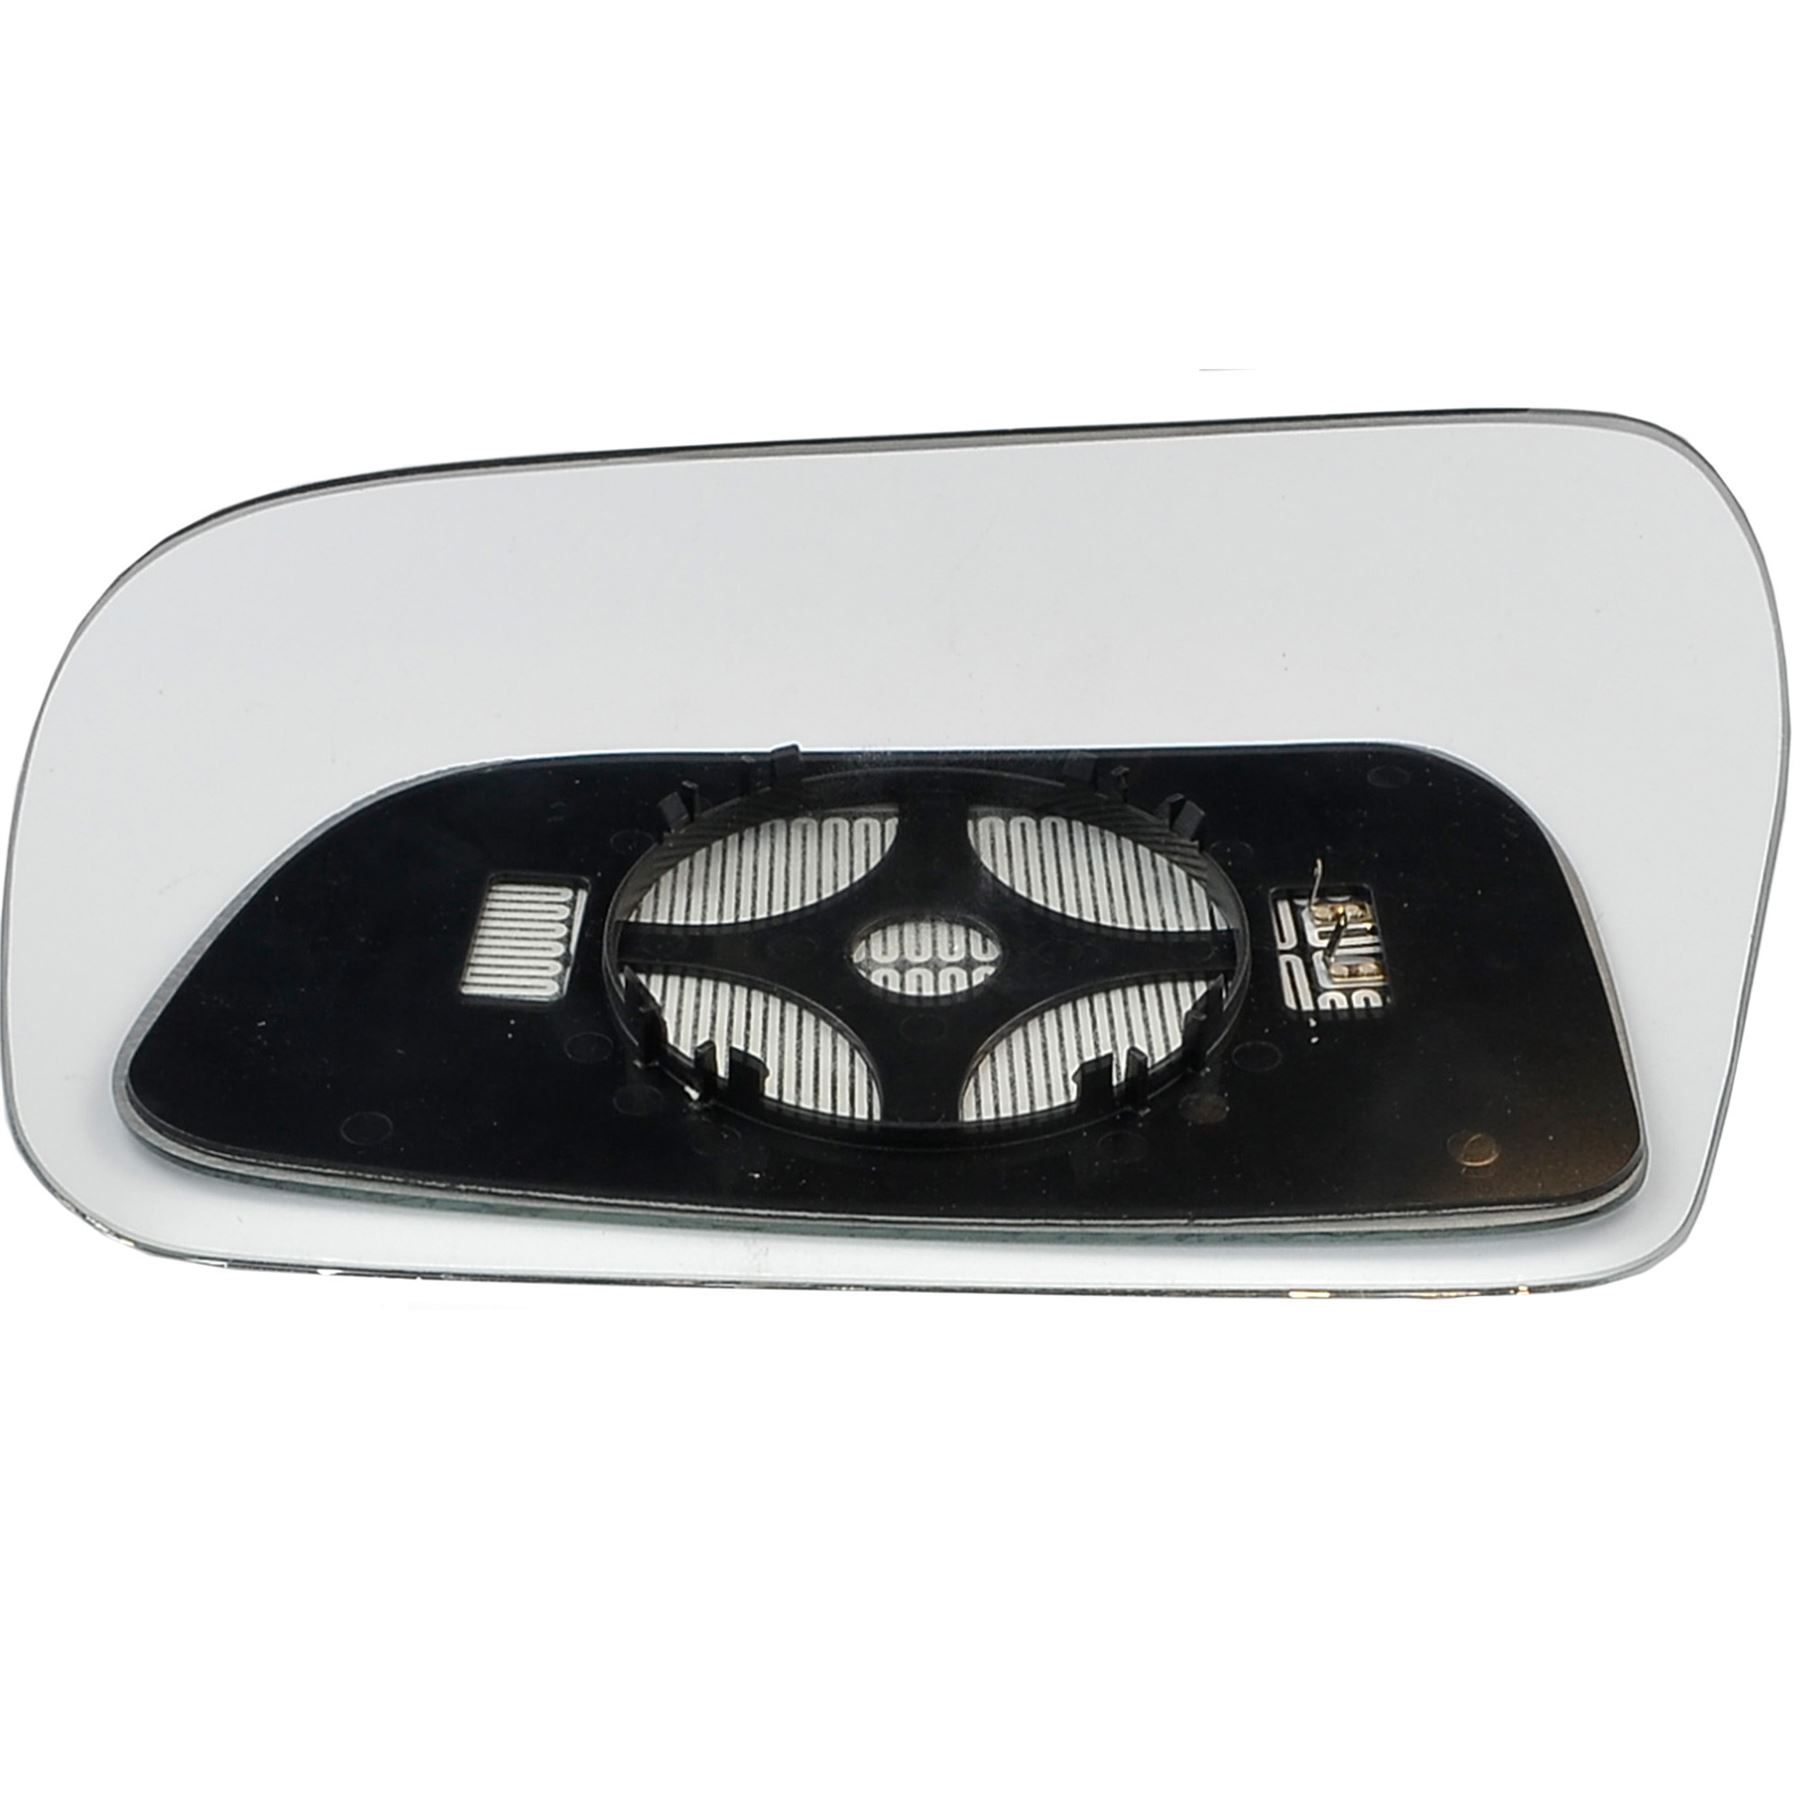 Wing Mirror Glass For HYUNDAI TUSCON 2004-2009 Convex HEATED Left Side#JA013